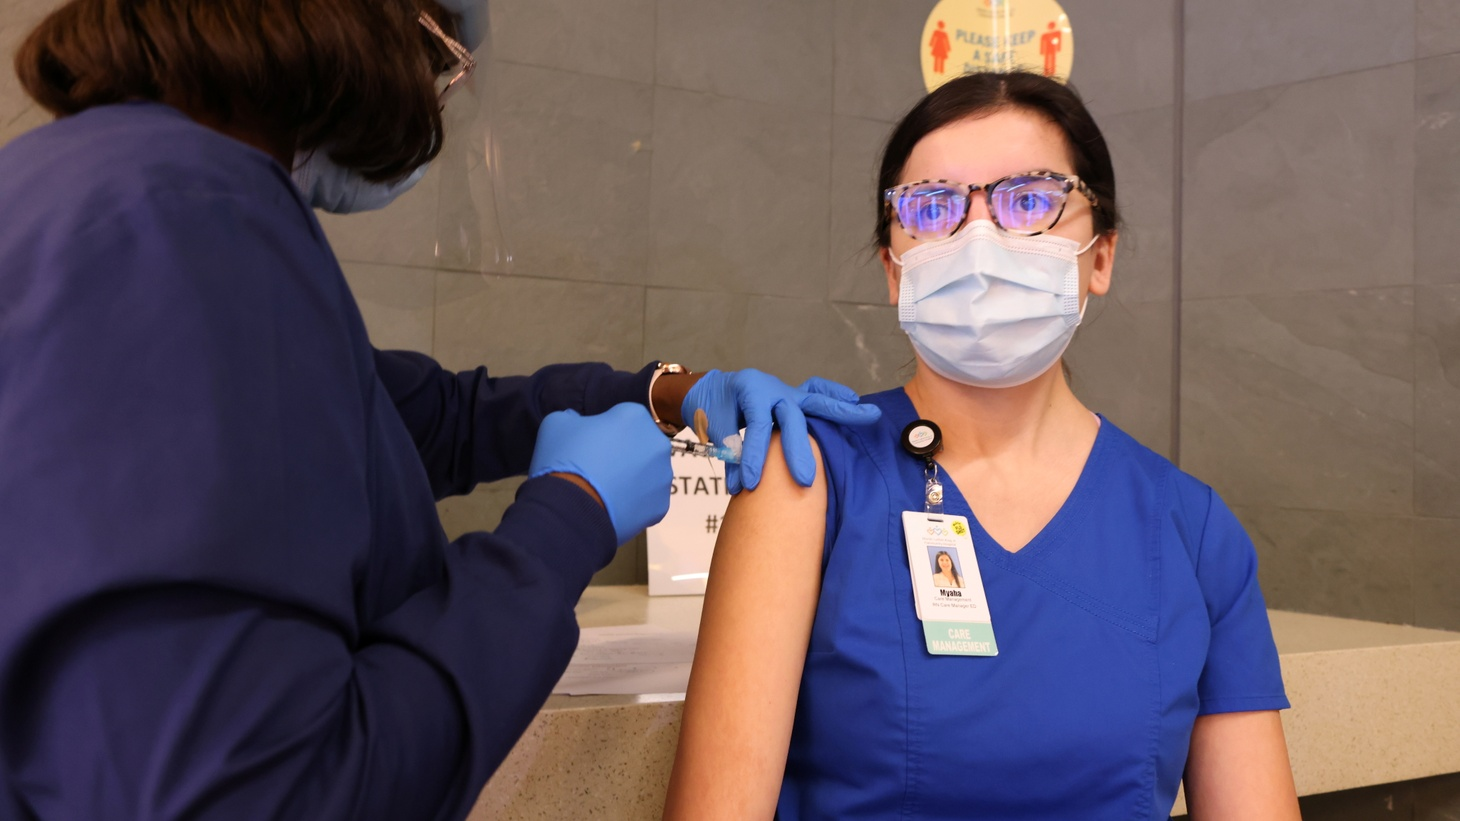 ER case manager Myaha Tovar, 24, is given the coronavirus disease (COVID-19) vaccine at Martin Luther King Jr. Community Hospital, in South Los Angeles, California, U.S., December 17, 2020.